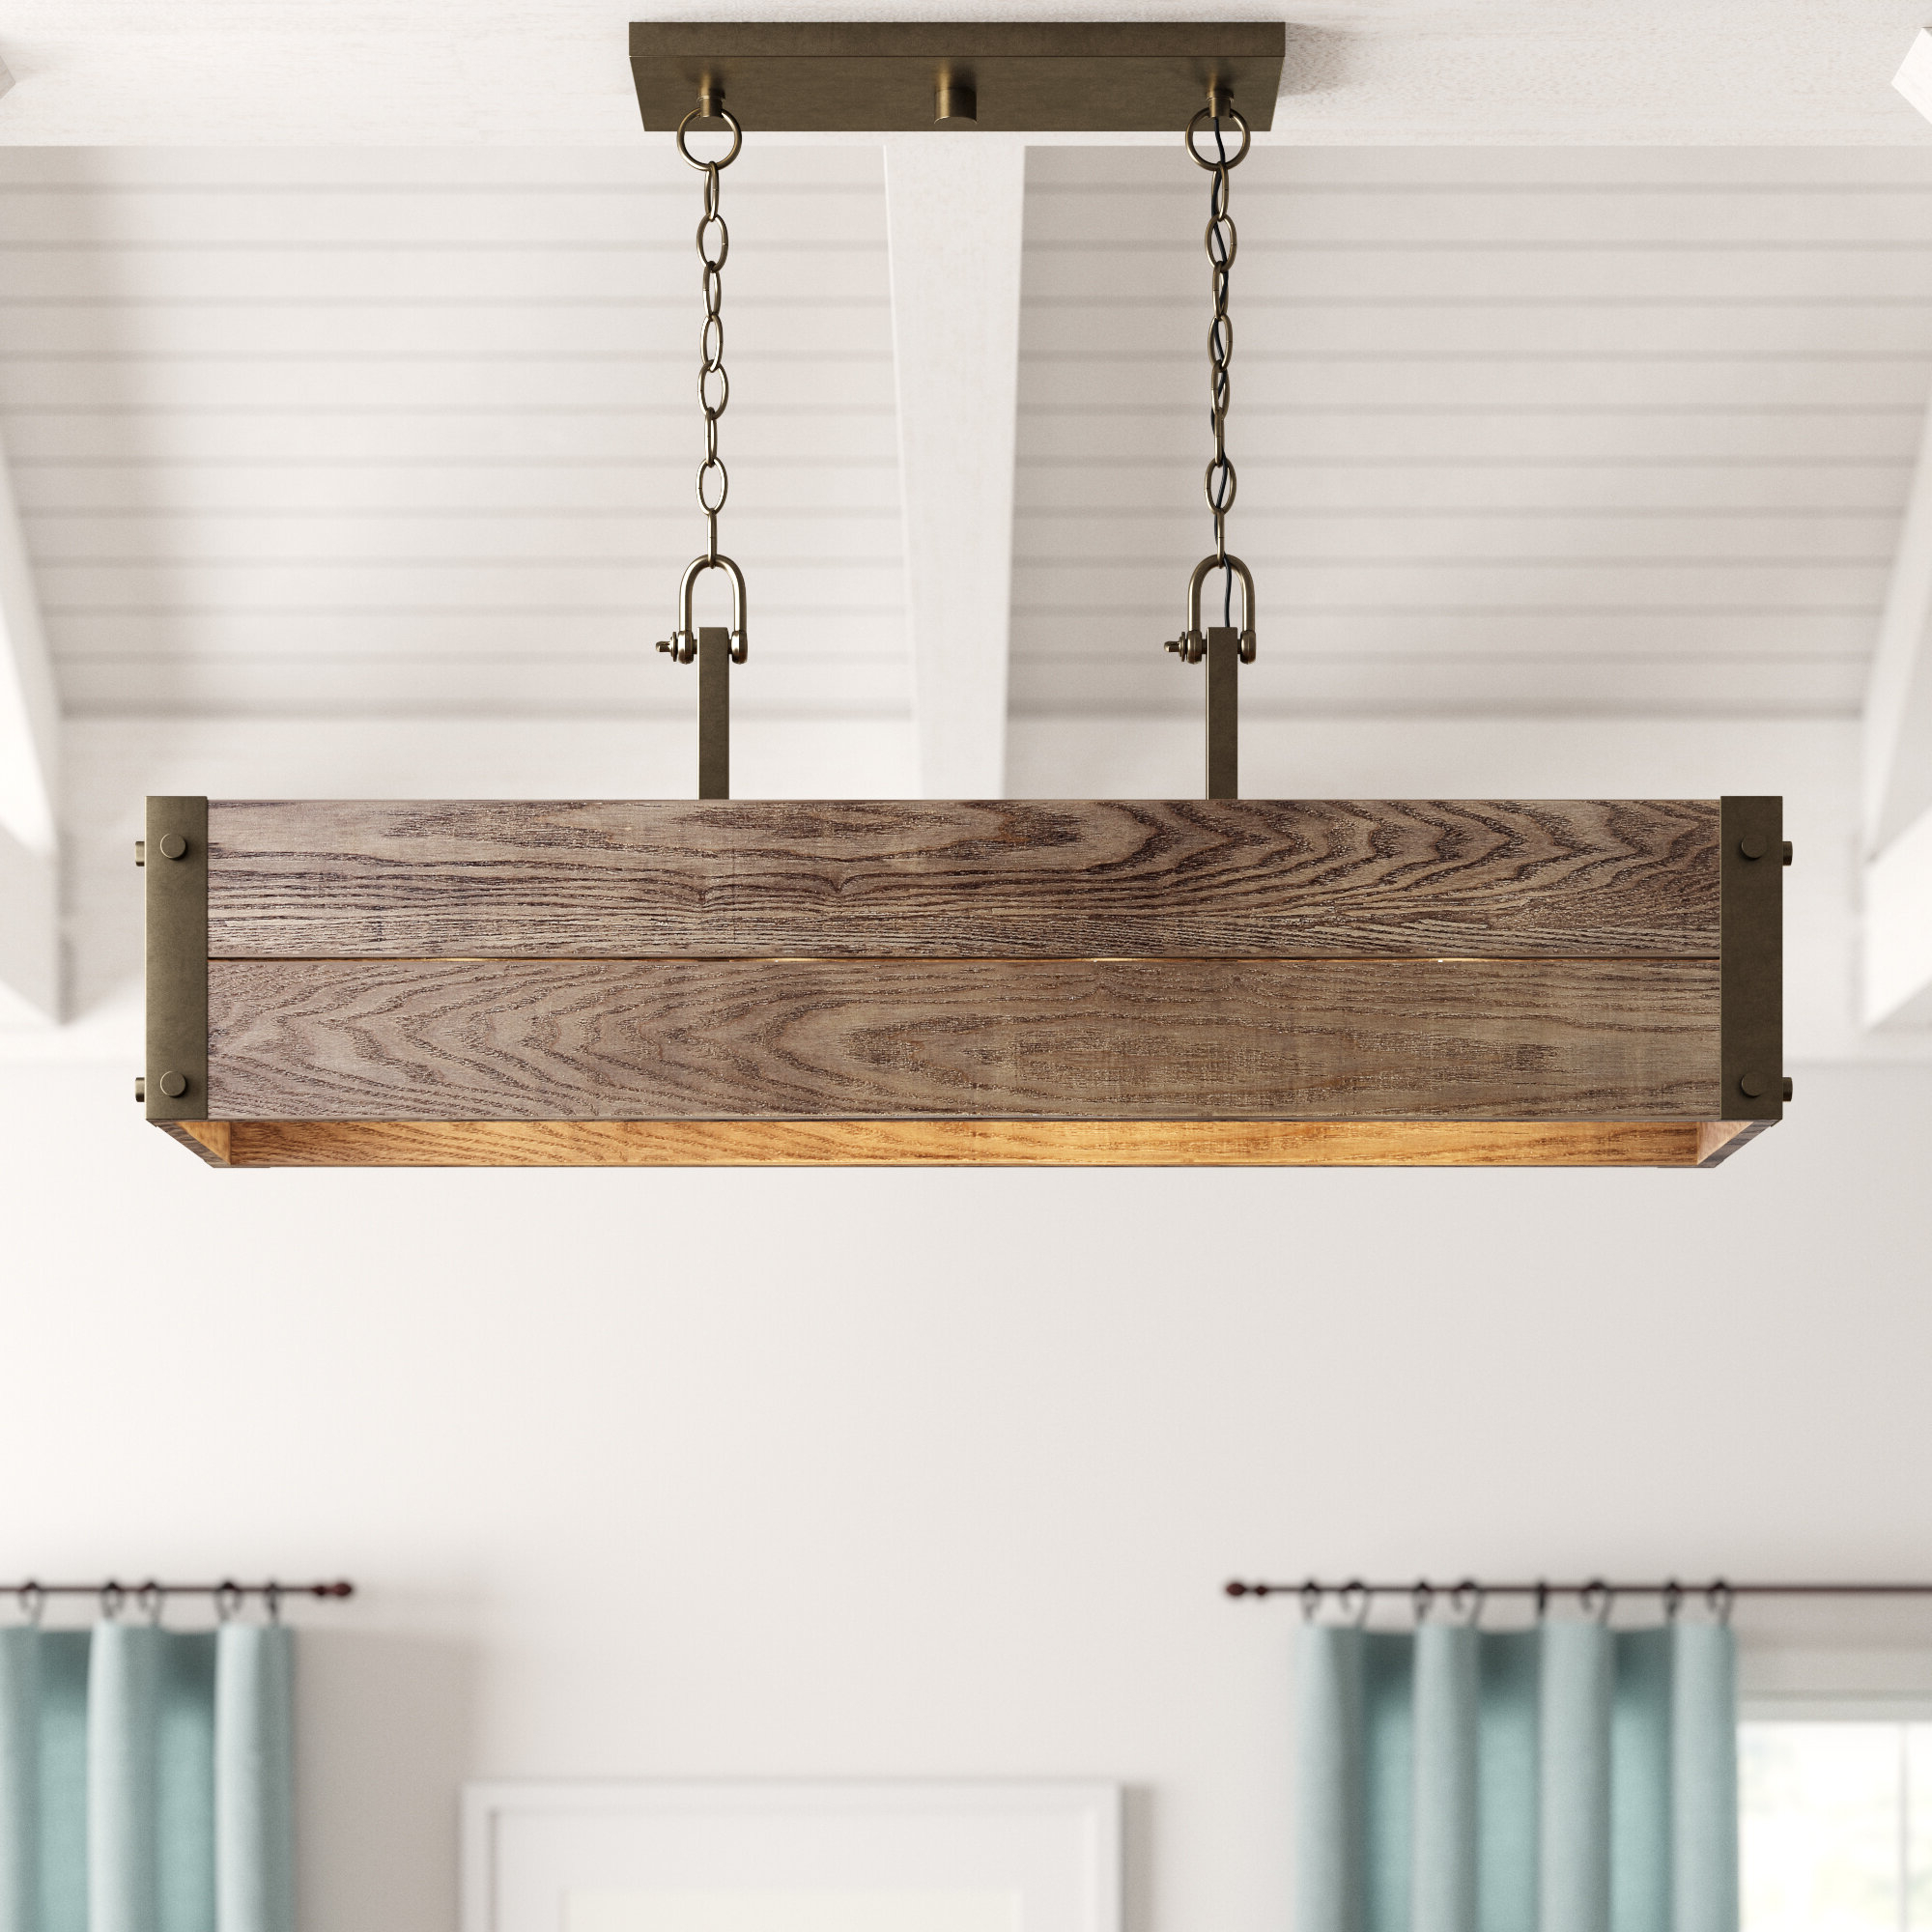 2020 Cathey 4 Light Kitchen Island Linear Pendant In Cinchring 4 Light Kitchen Island Linear Pendants (View 3 of 25)